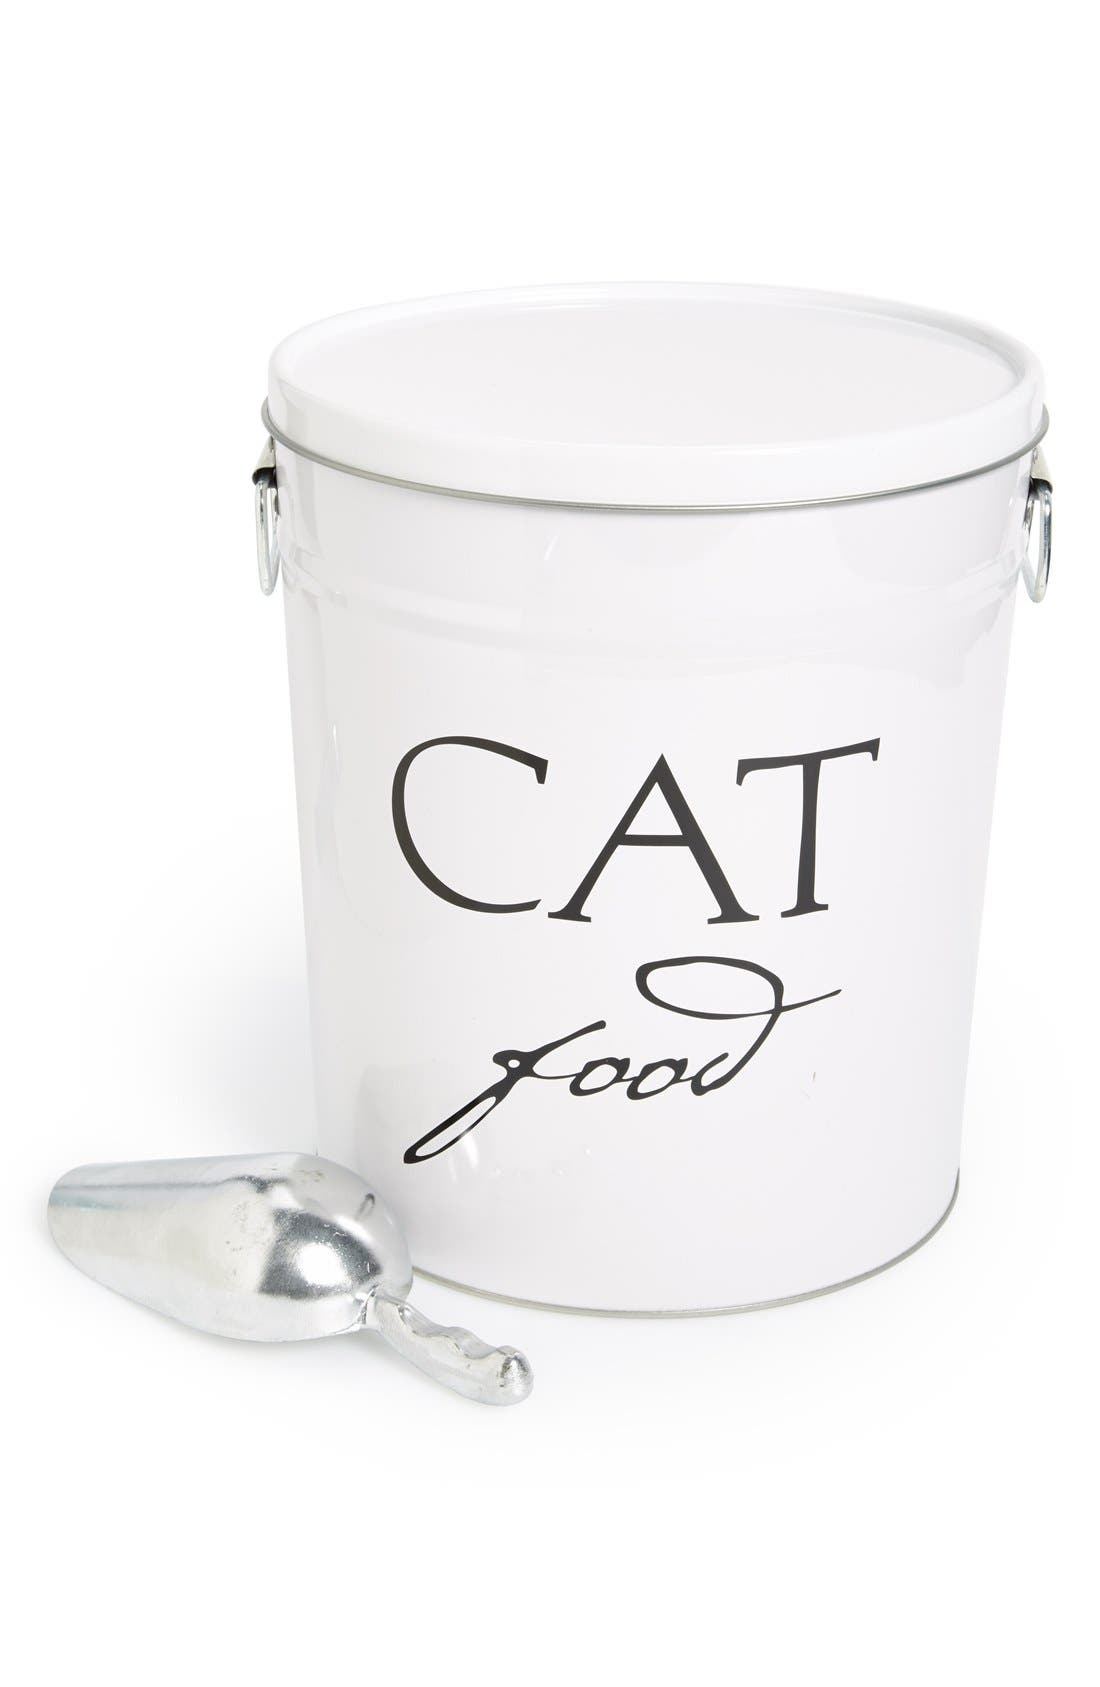 HARRY BARKER 'Classic' Cat Food Storage Canister, Main, color, 100